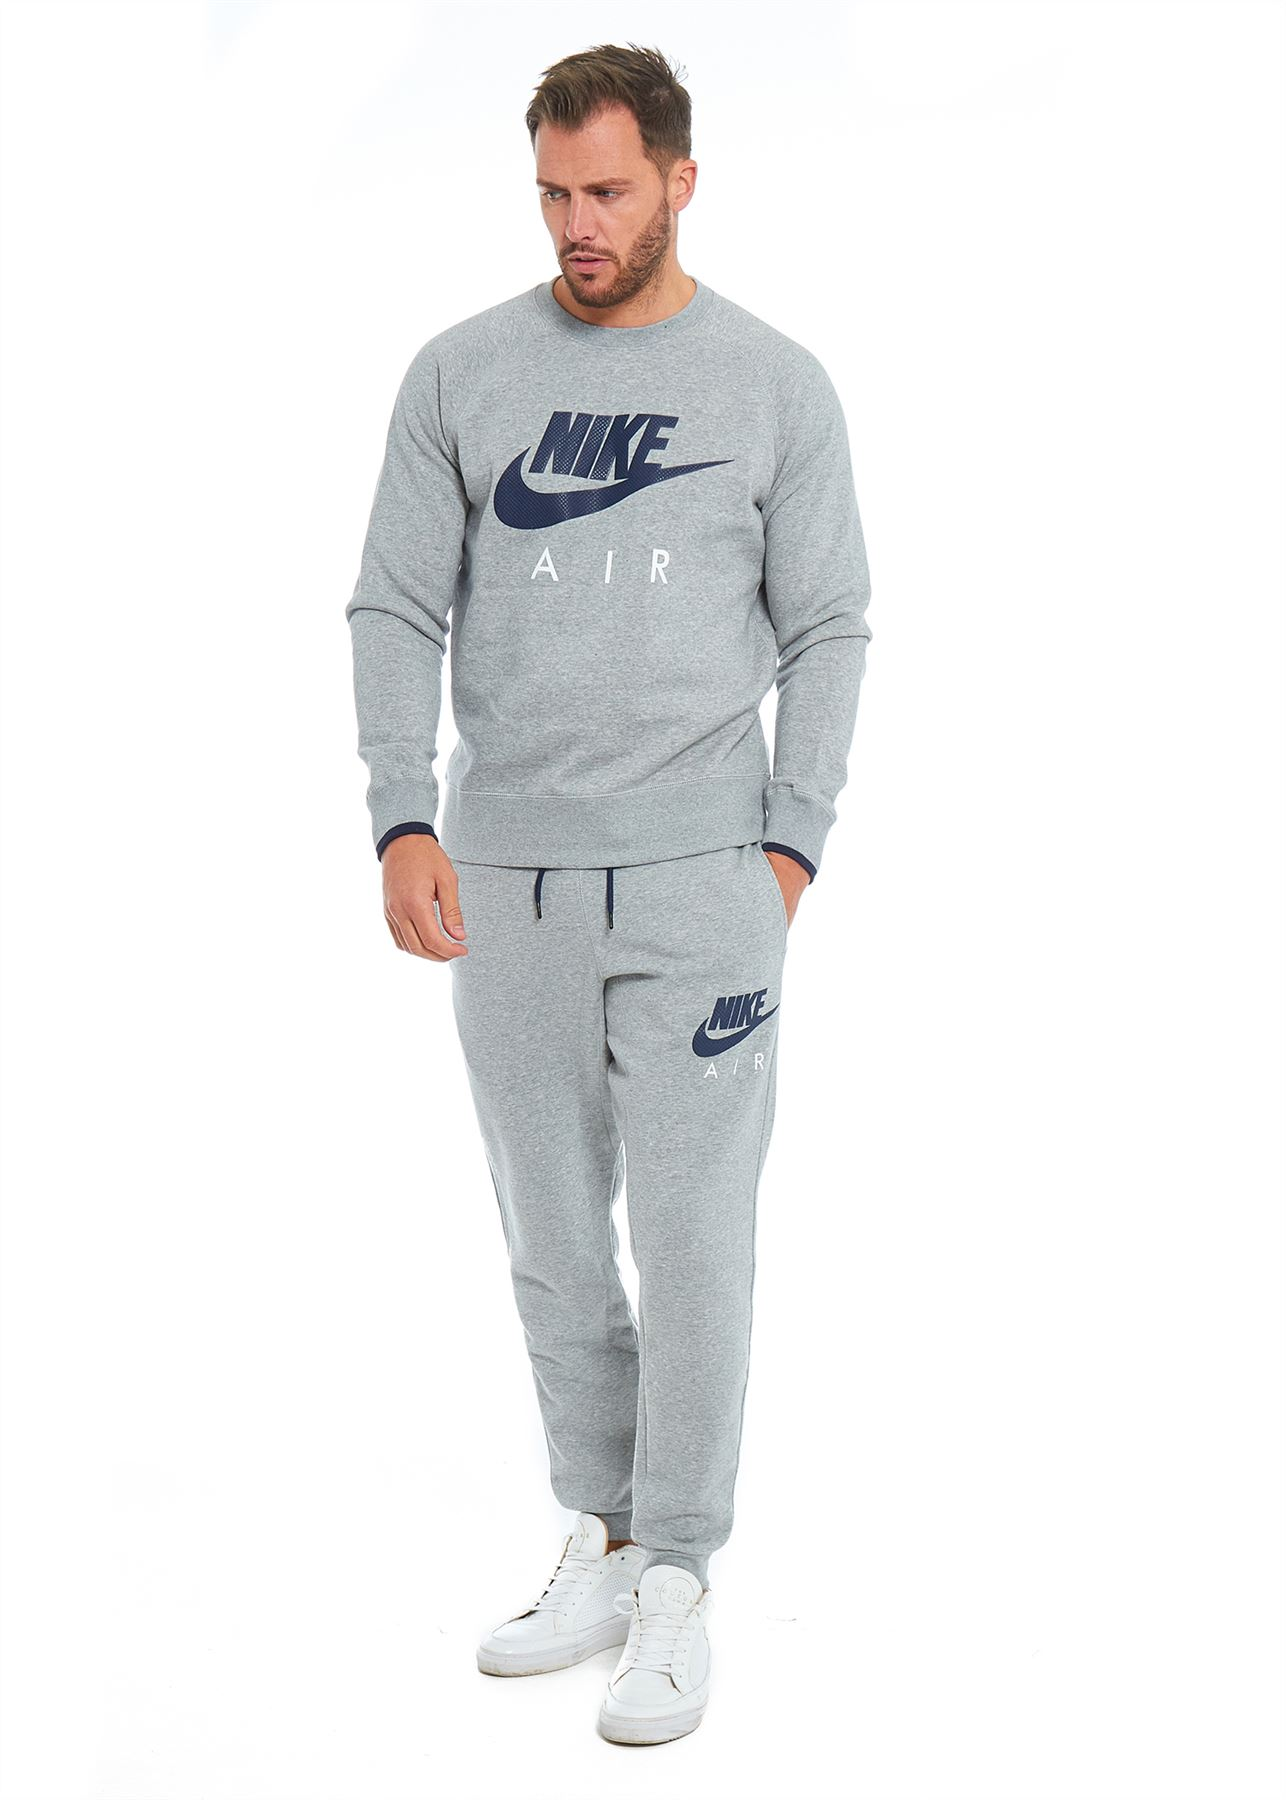 Shop the latest in style, innovation and comfort with Nike men's joggers and sweatpants. Strike a balance between function and fashion with a pair of men's joggers for sport, training or everyday wear. Find the perfect fit and browse the latest selection of men's joggers in standard, slim or tight fits.